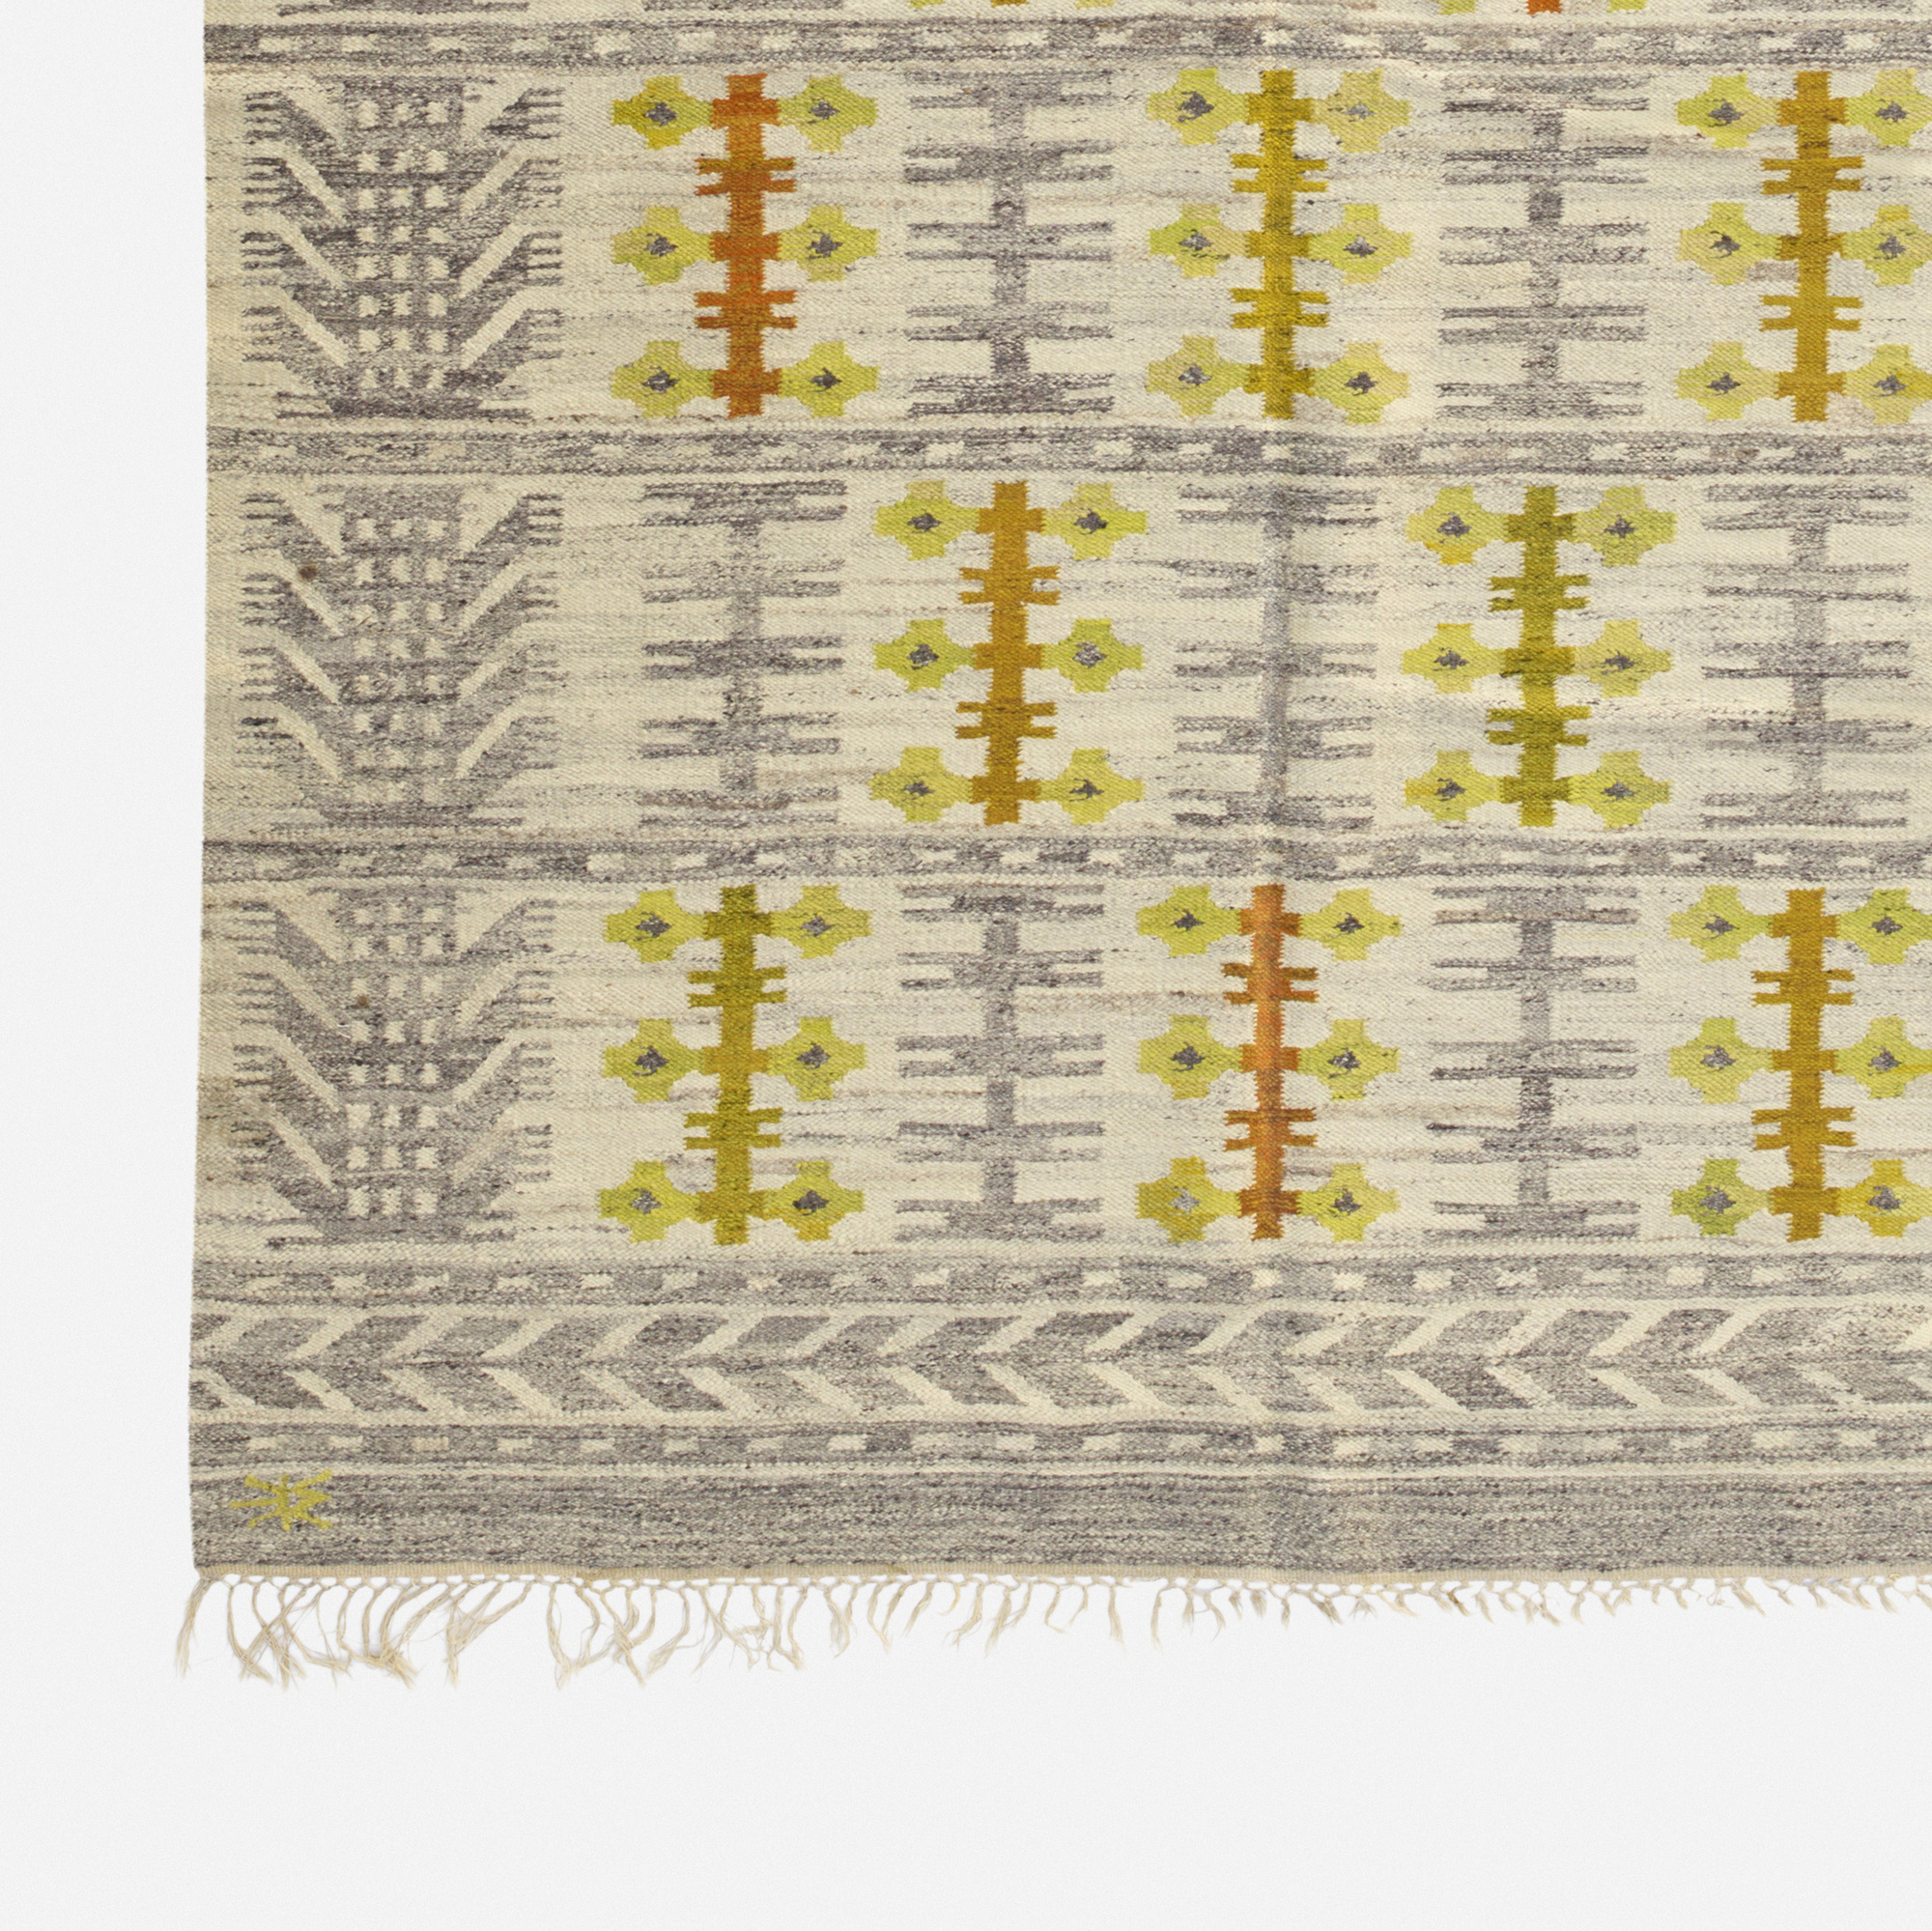 257: Swedish / flatweave carpet (2 of 2)